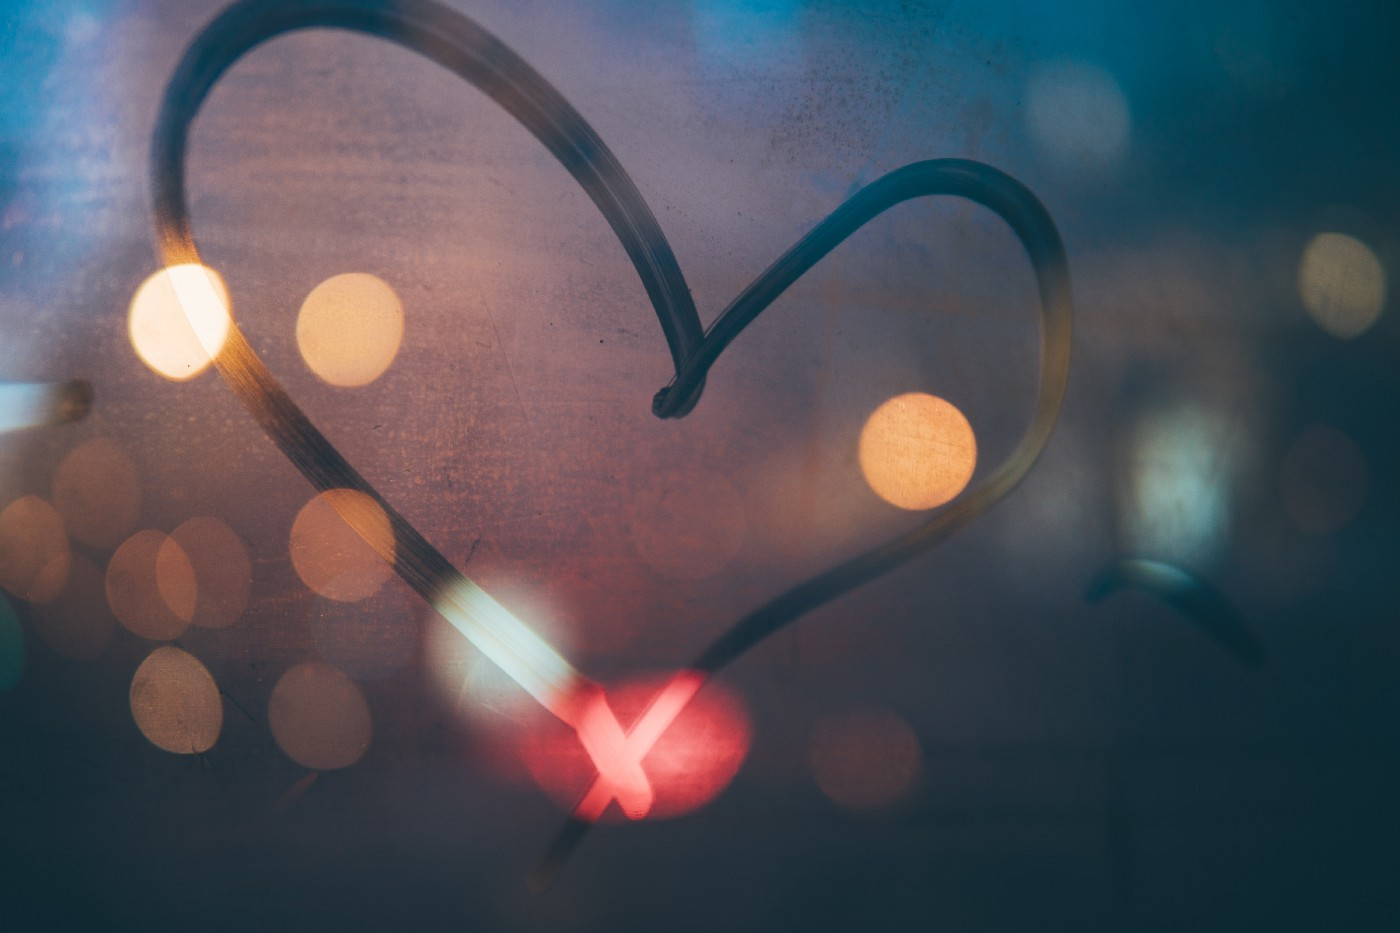 A closeup of a heart drawn on a foggy window, with blurred lights in the background